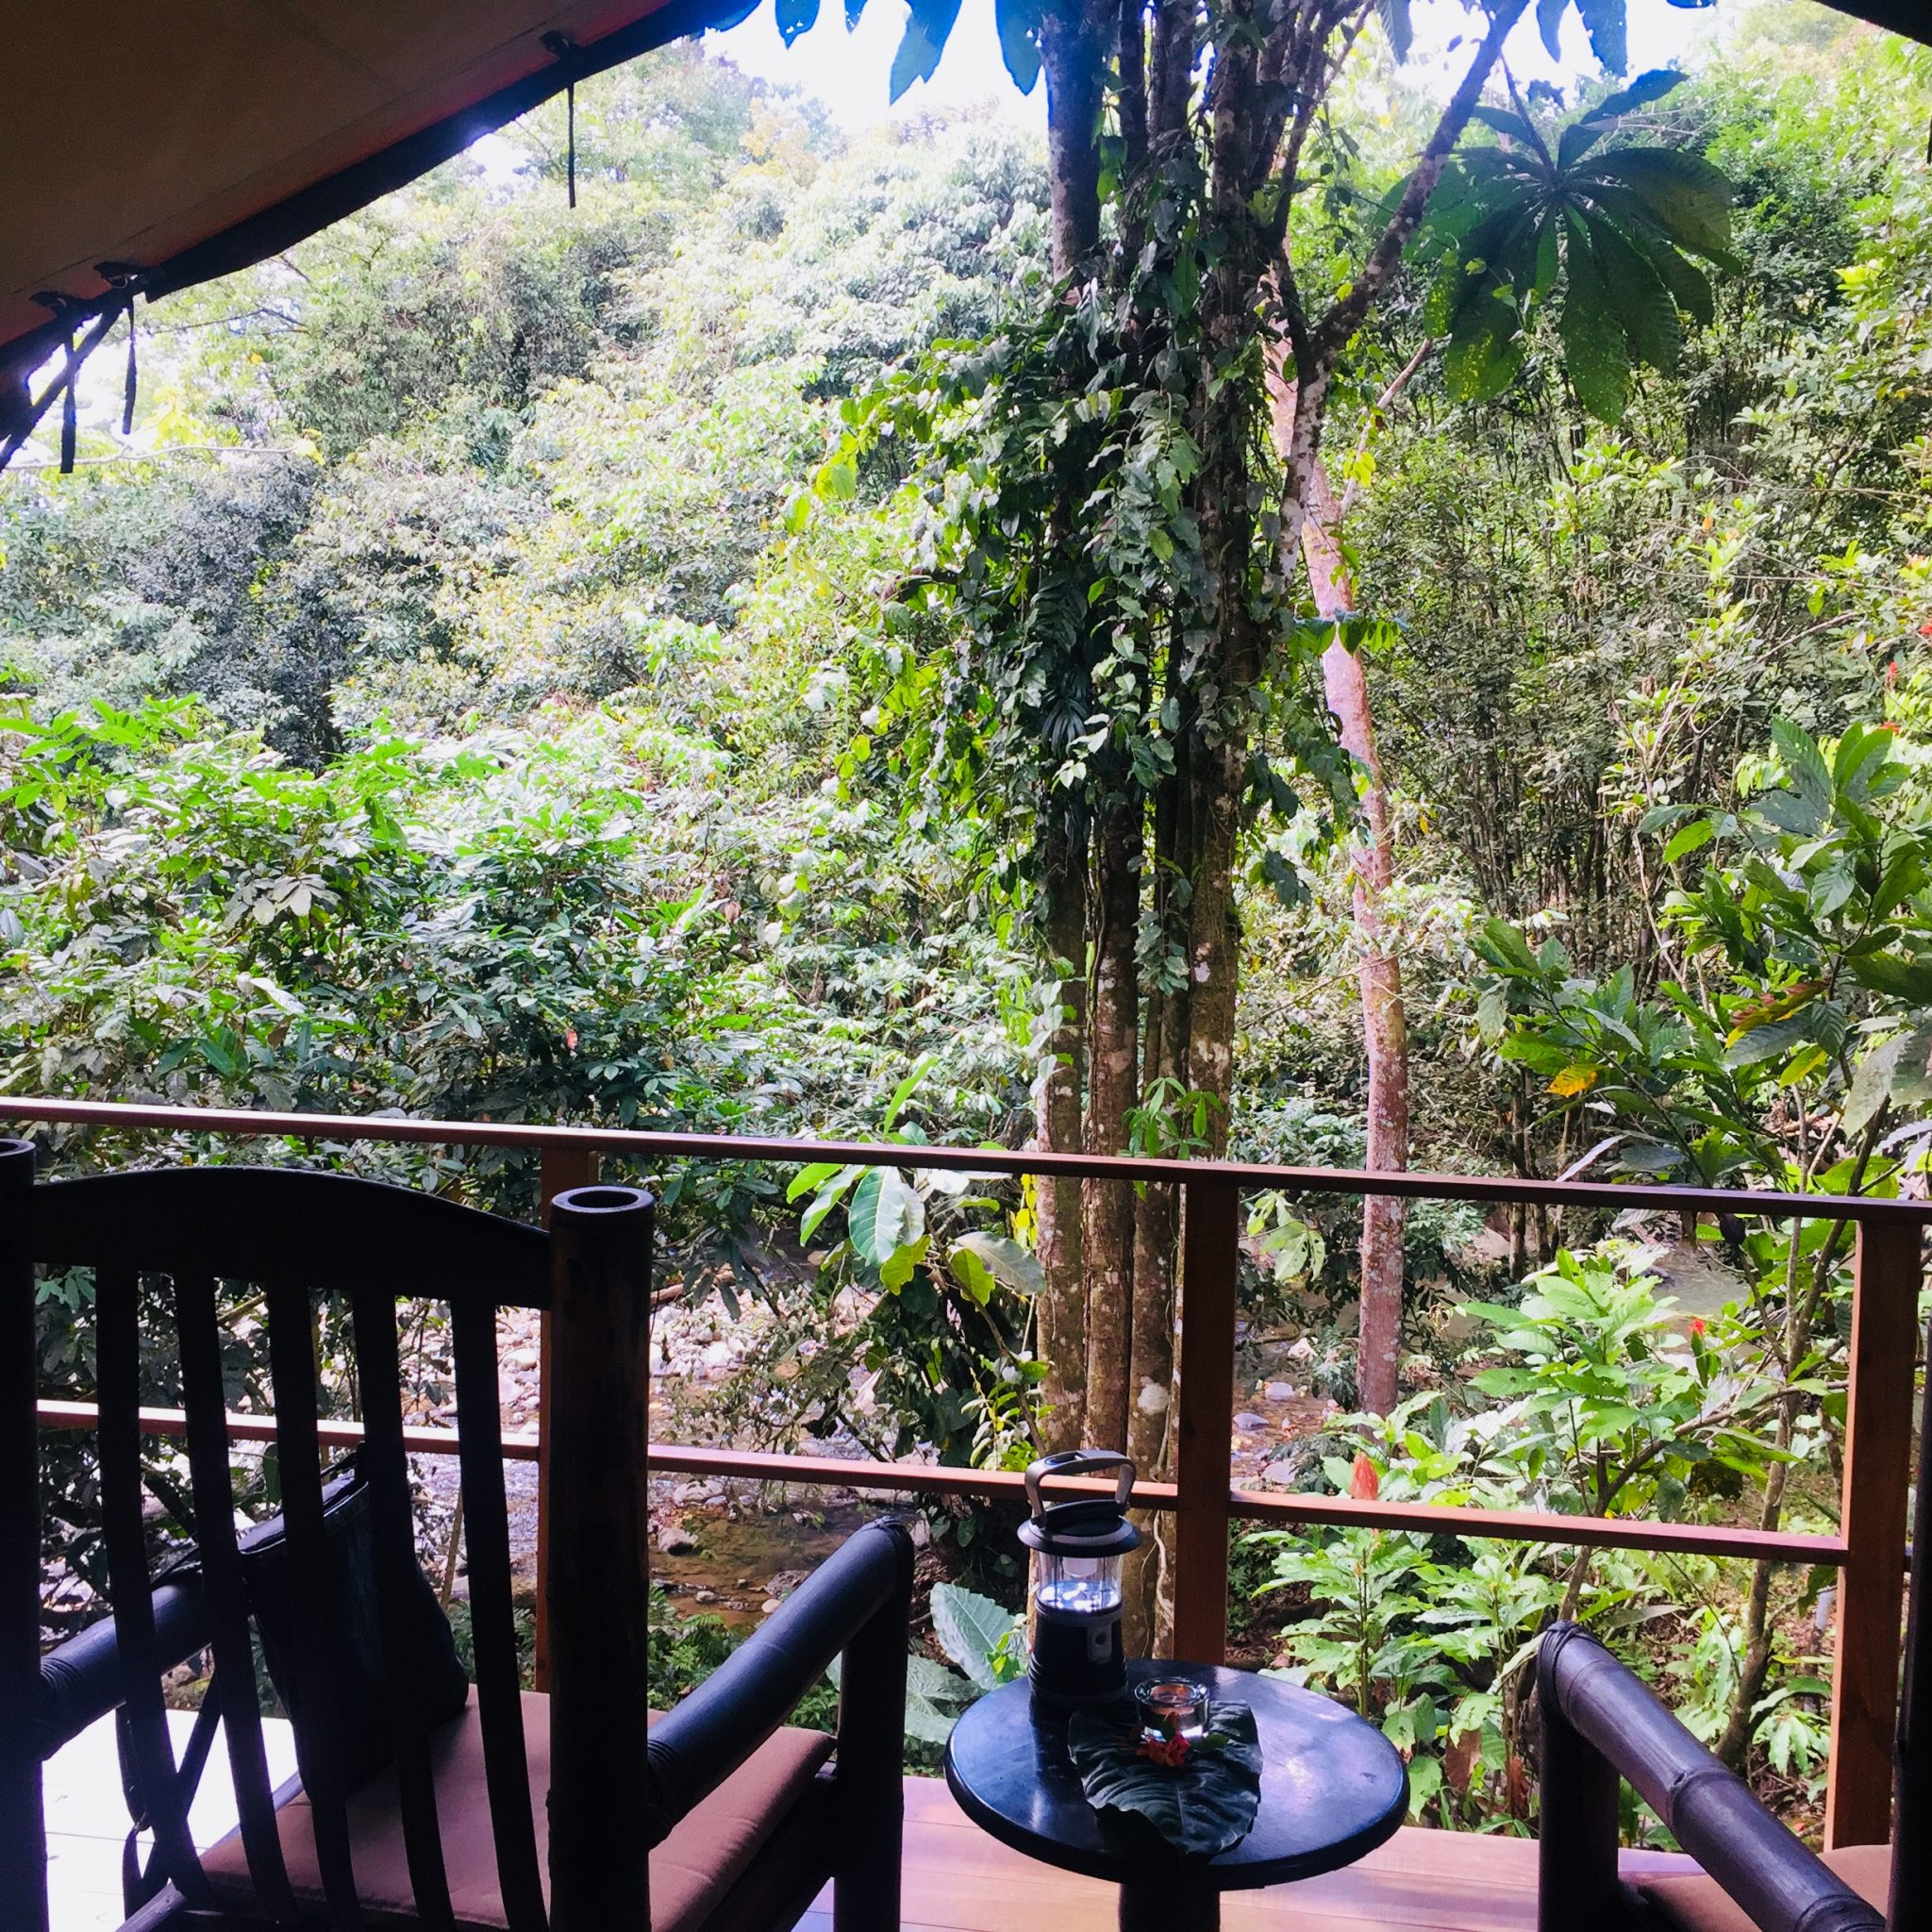 Morning at Rio Tico - a genuine connection to nature usually comes from smaller lodgings.